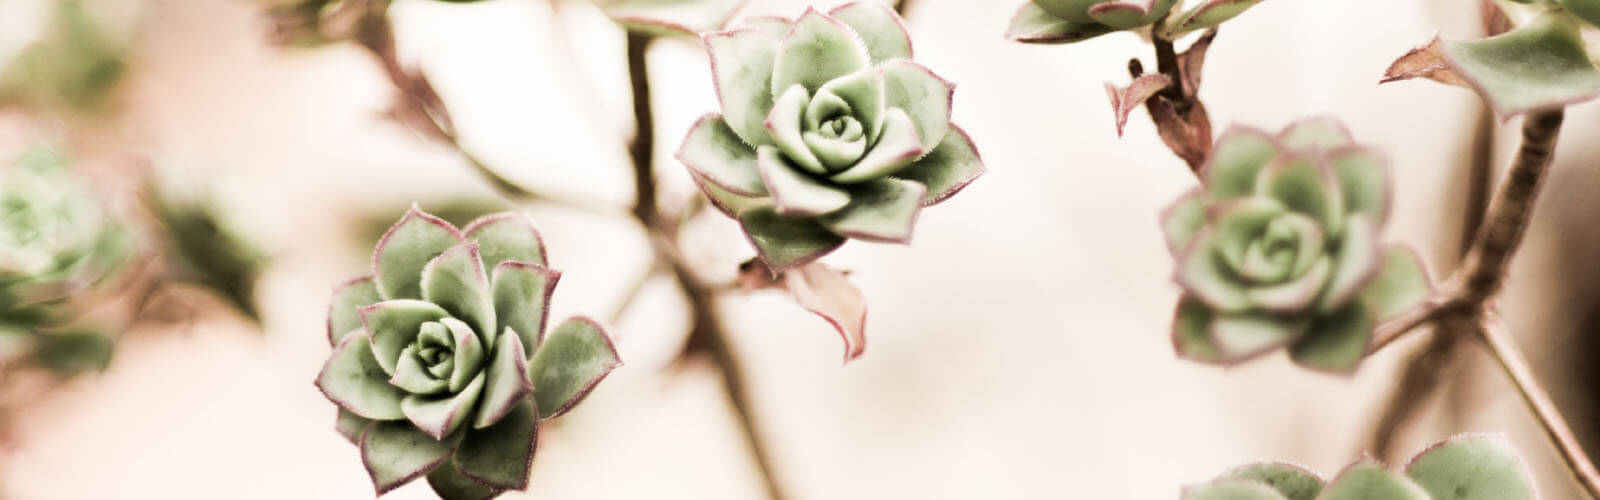 testimonial background with succulents